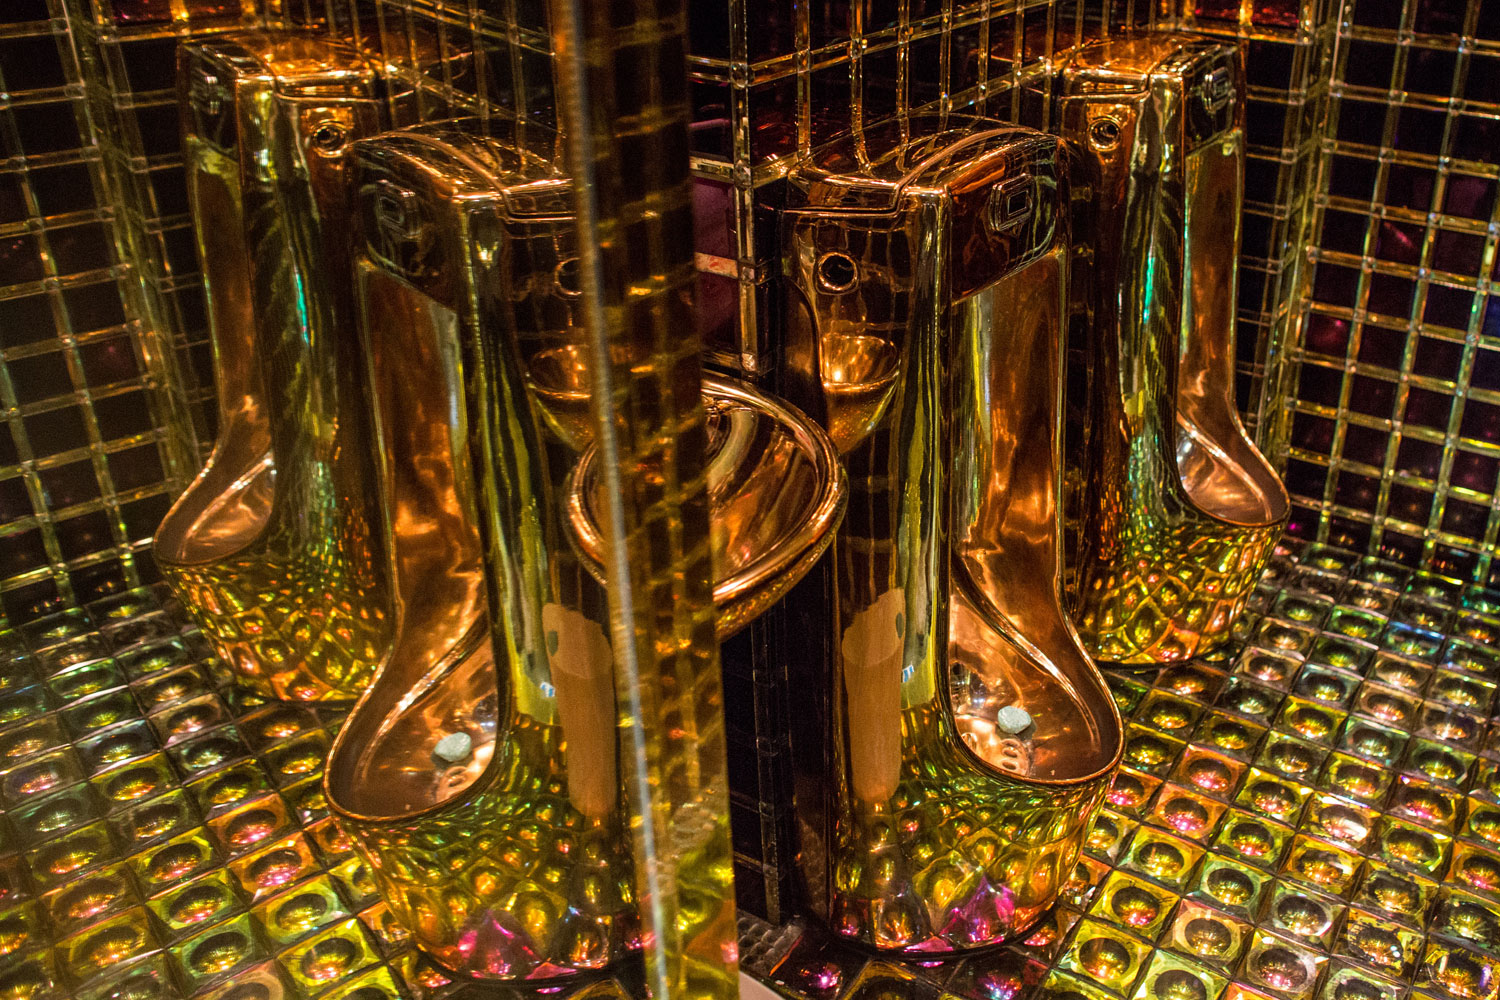 Gold colored urinals are seen in the men's bathroom  at The Robot Restaurant on June 29, 2014 in Tokyo.